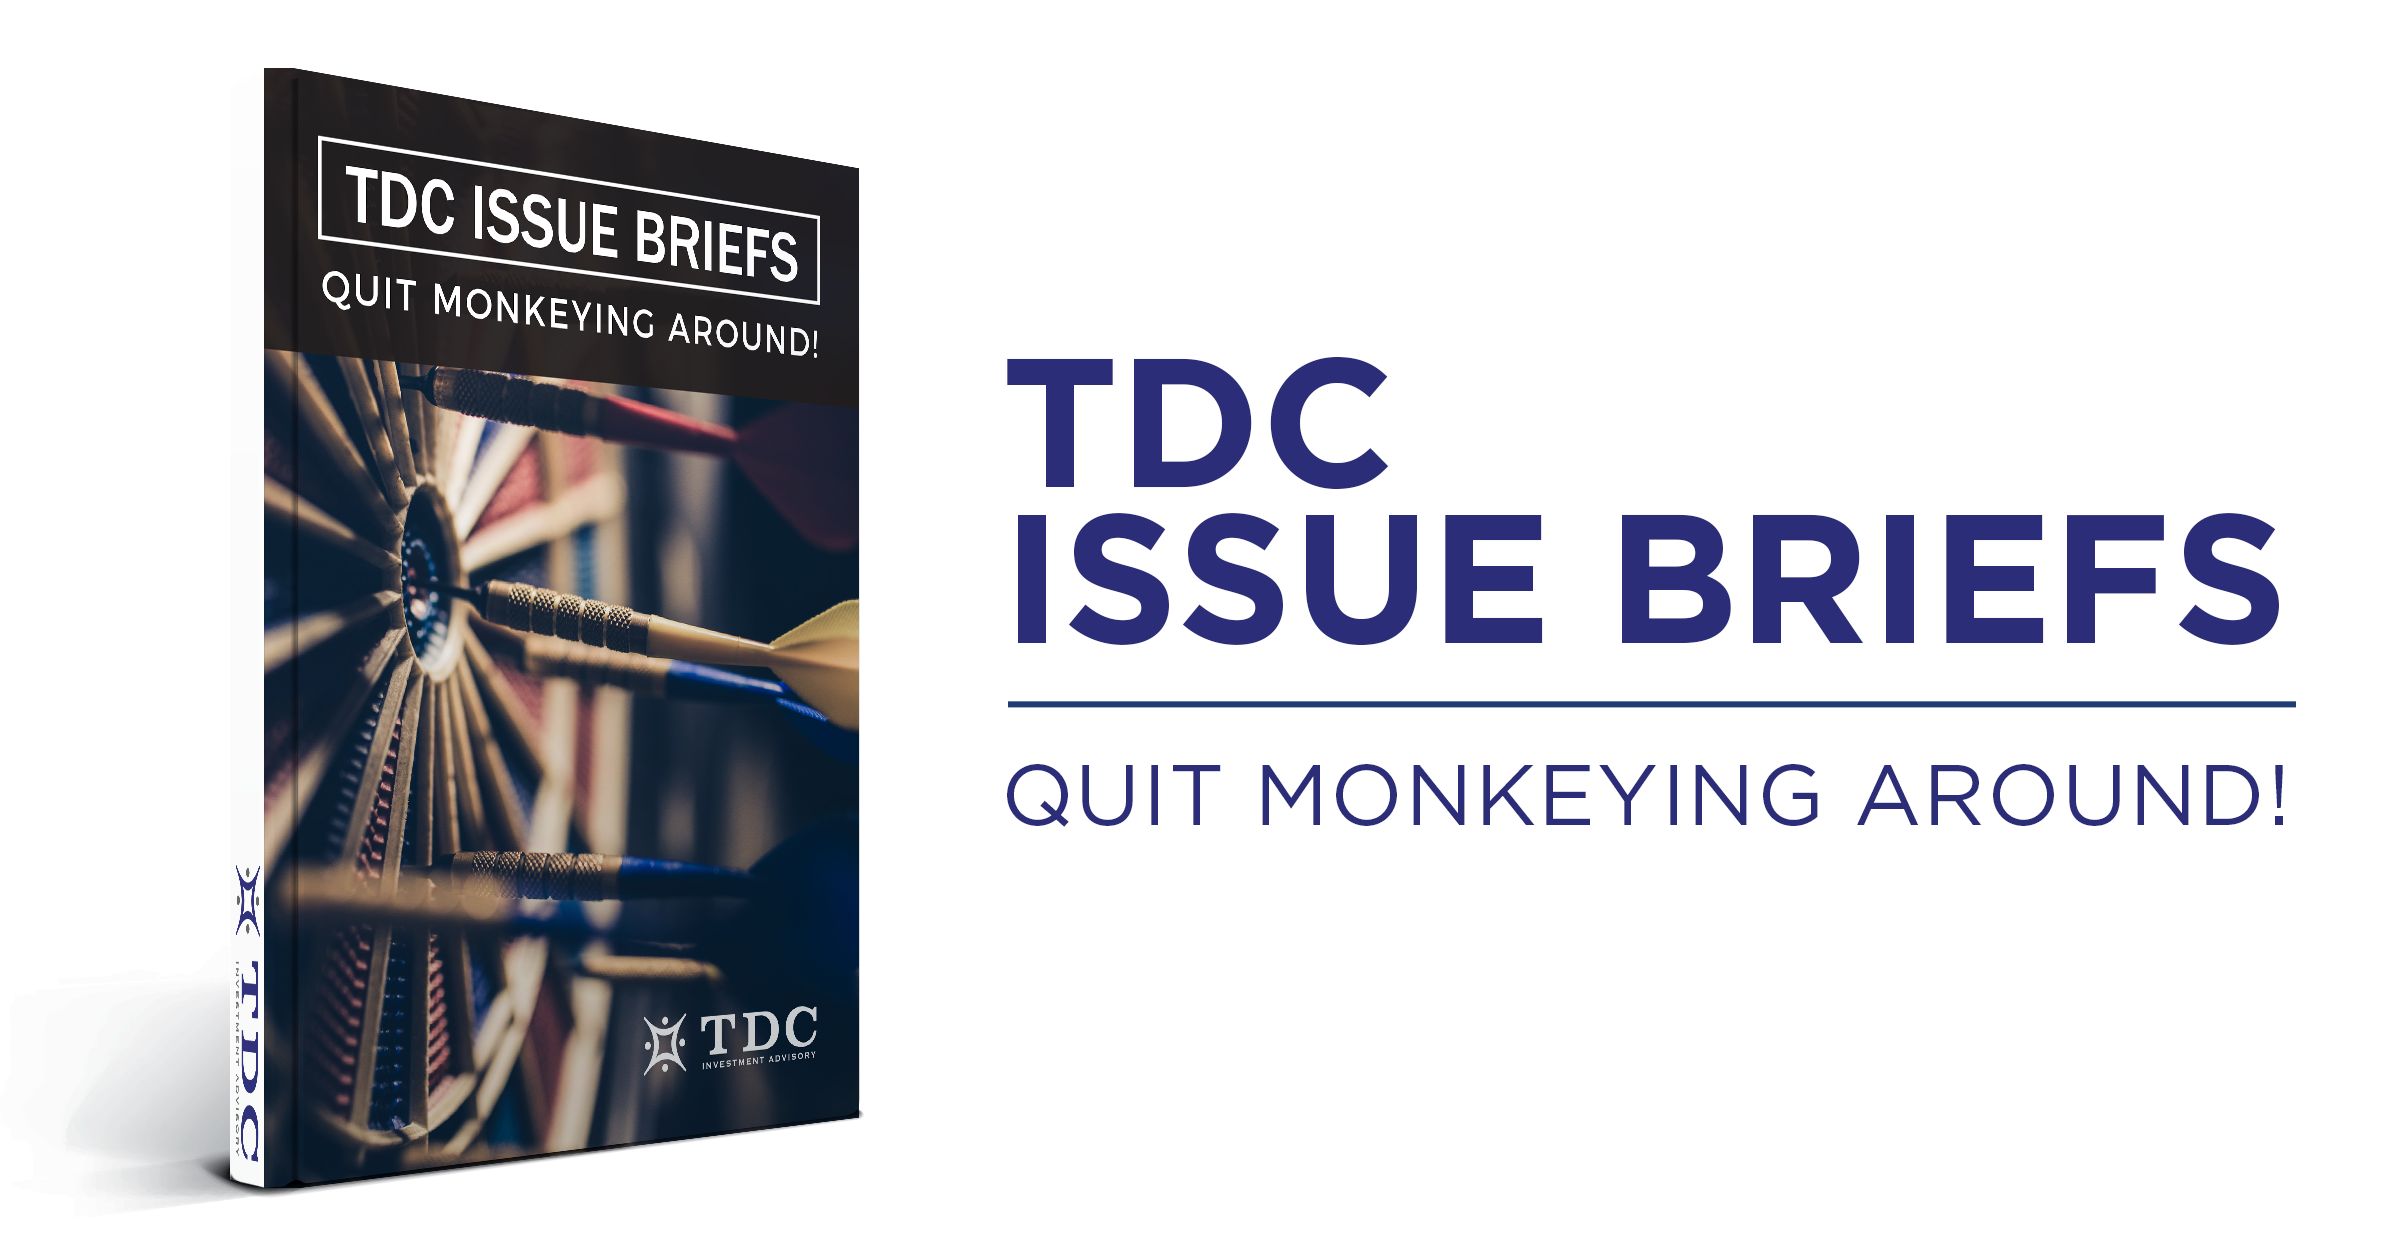 TDC Issue Briefs: Quit Monkeying Around!